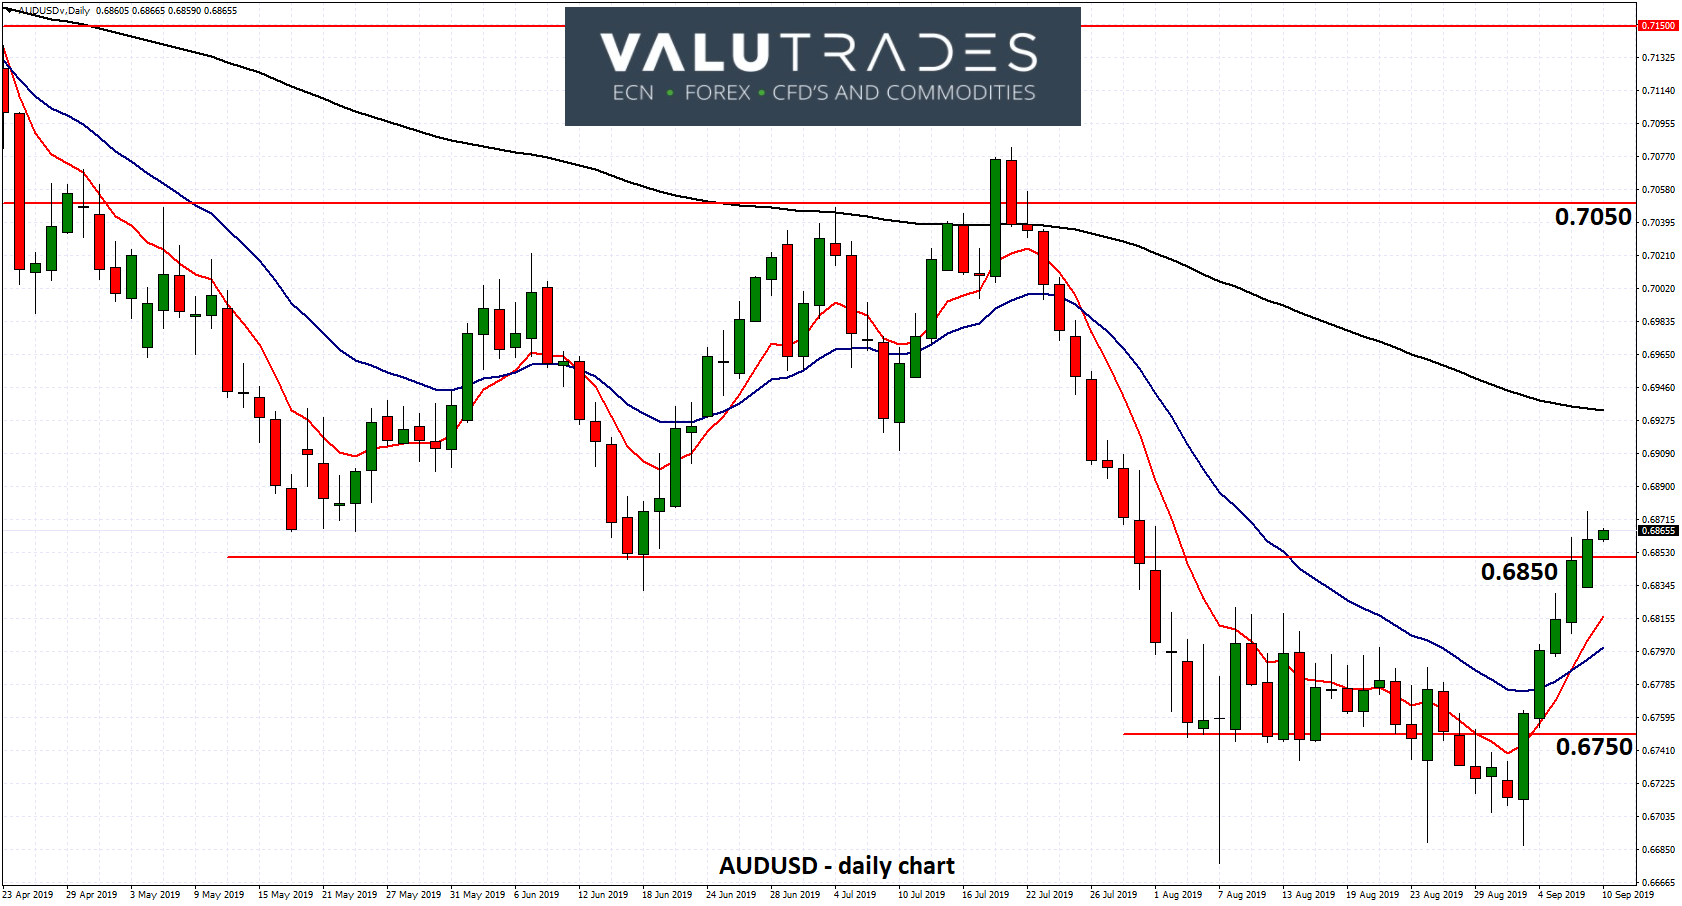 AUDUSD - Surges to One Month High at 0.6850 as RBA Sits on Rates